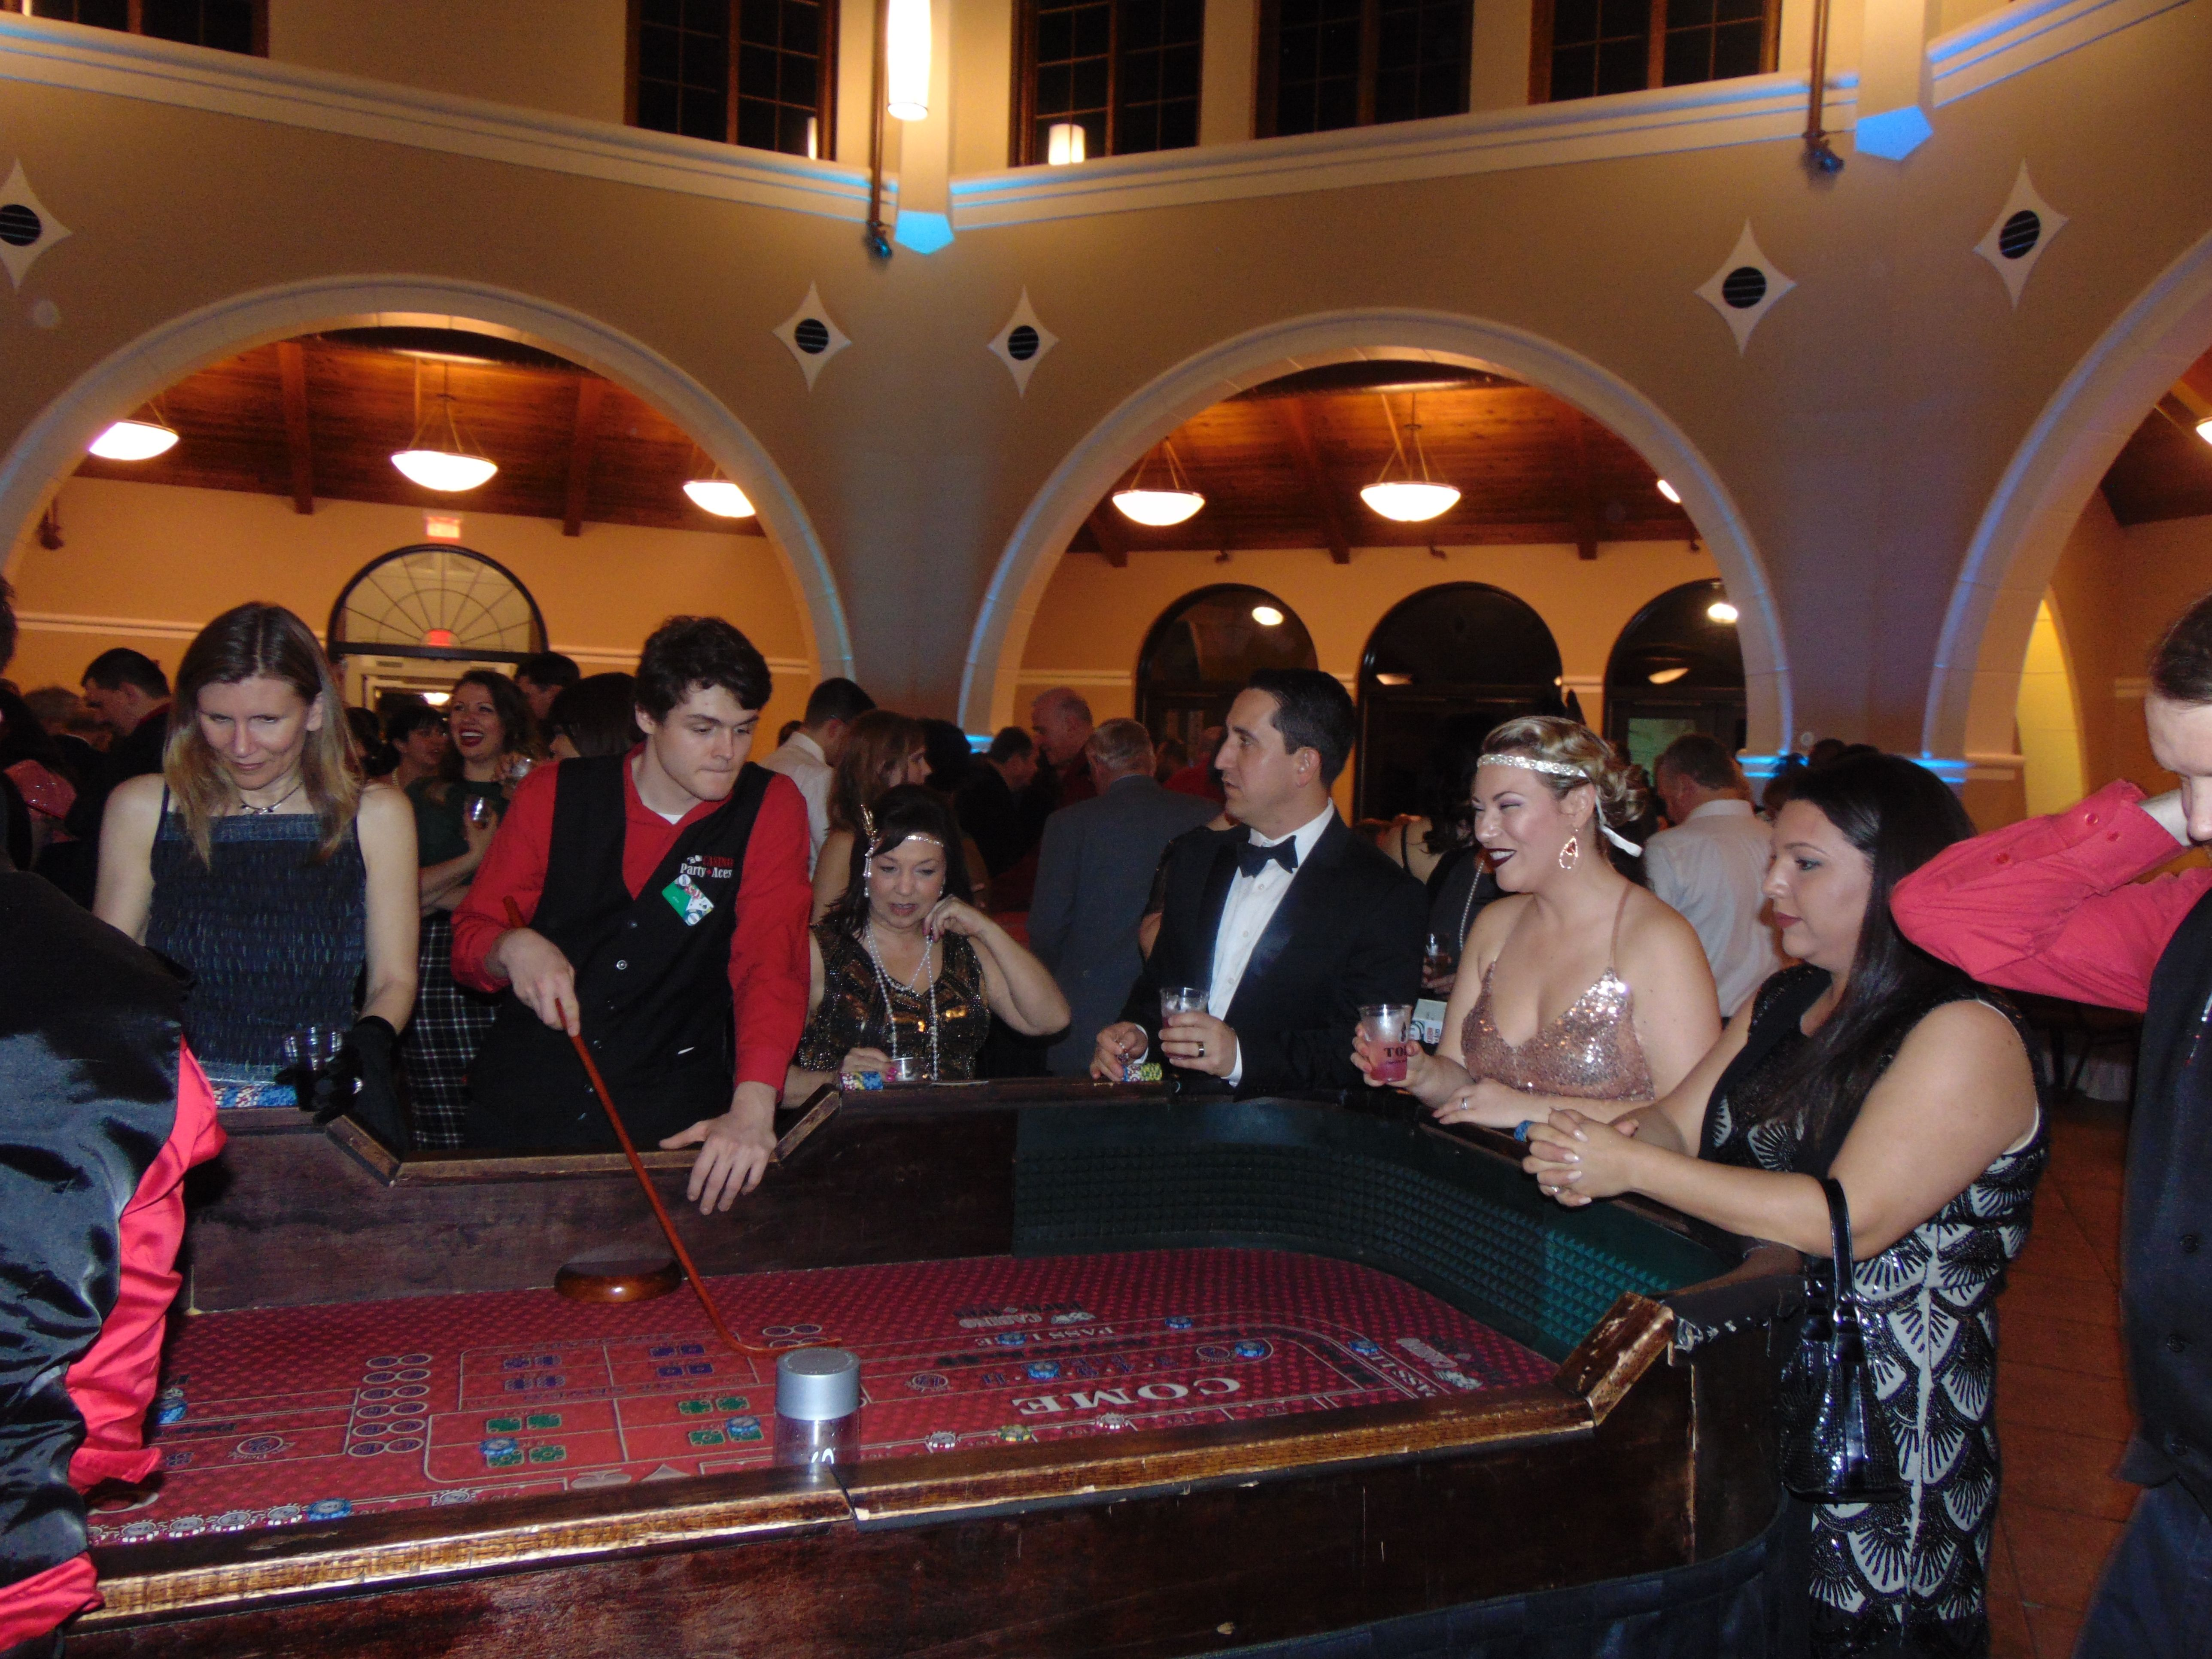 Evening at Casino Royale!